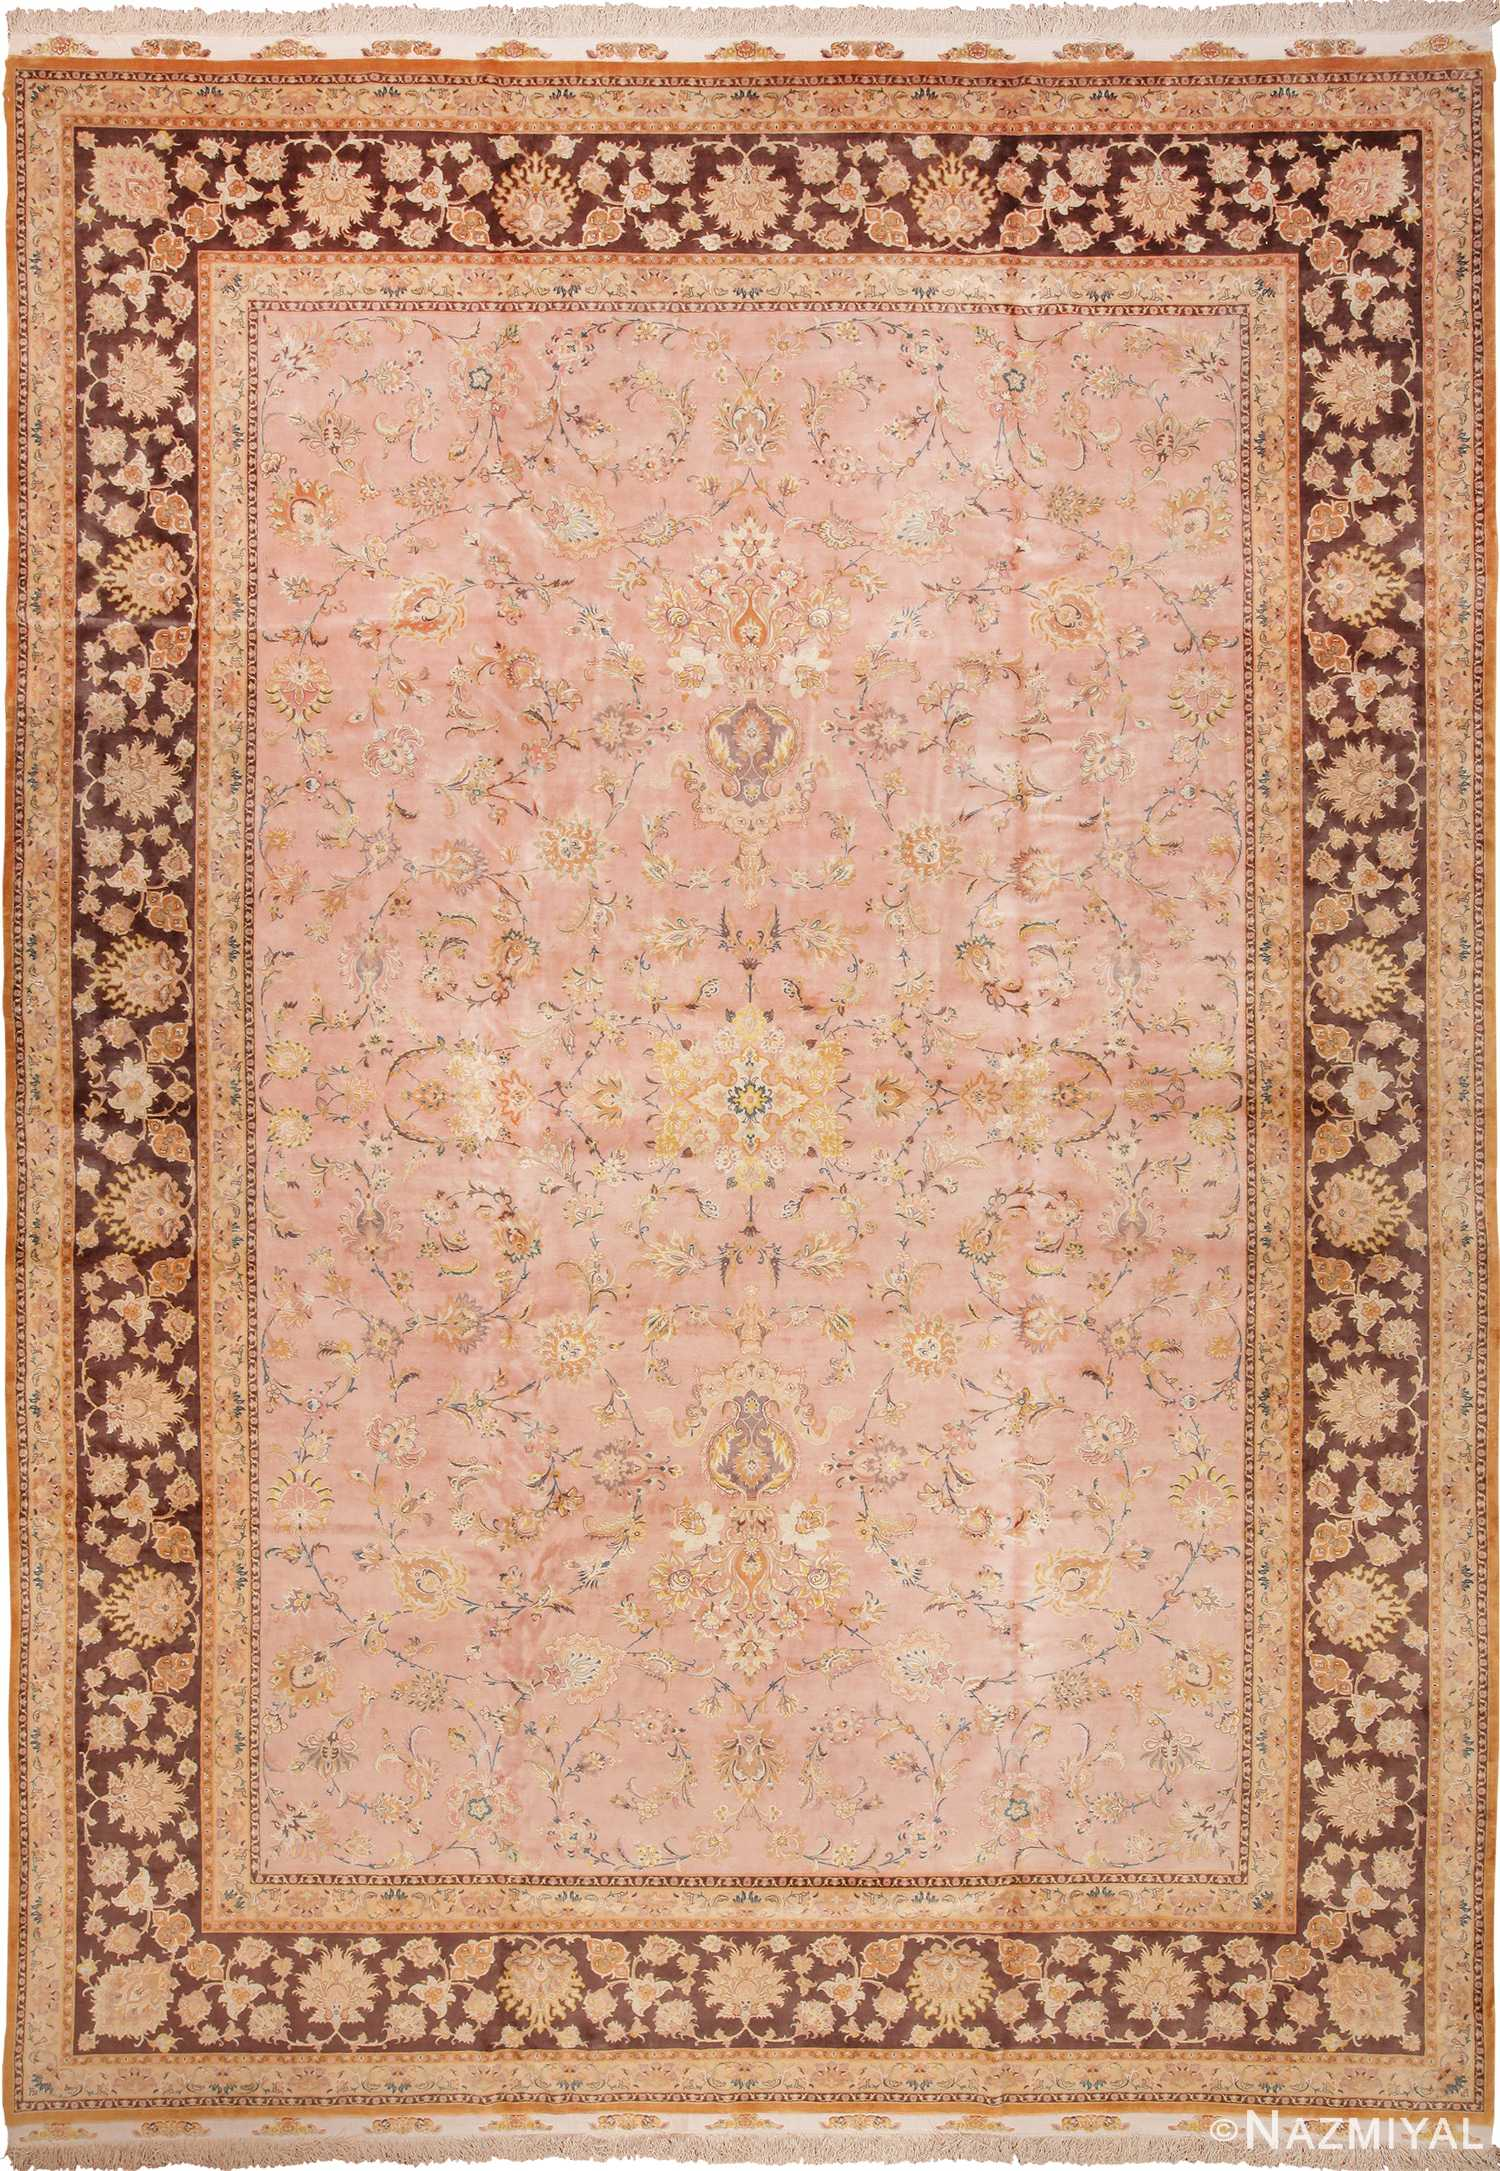 Large Light Pink Silk and Wool Vintage Persian Tabriz Rug 60014 by Nazmiyal